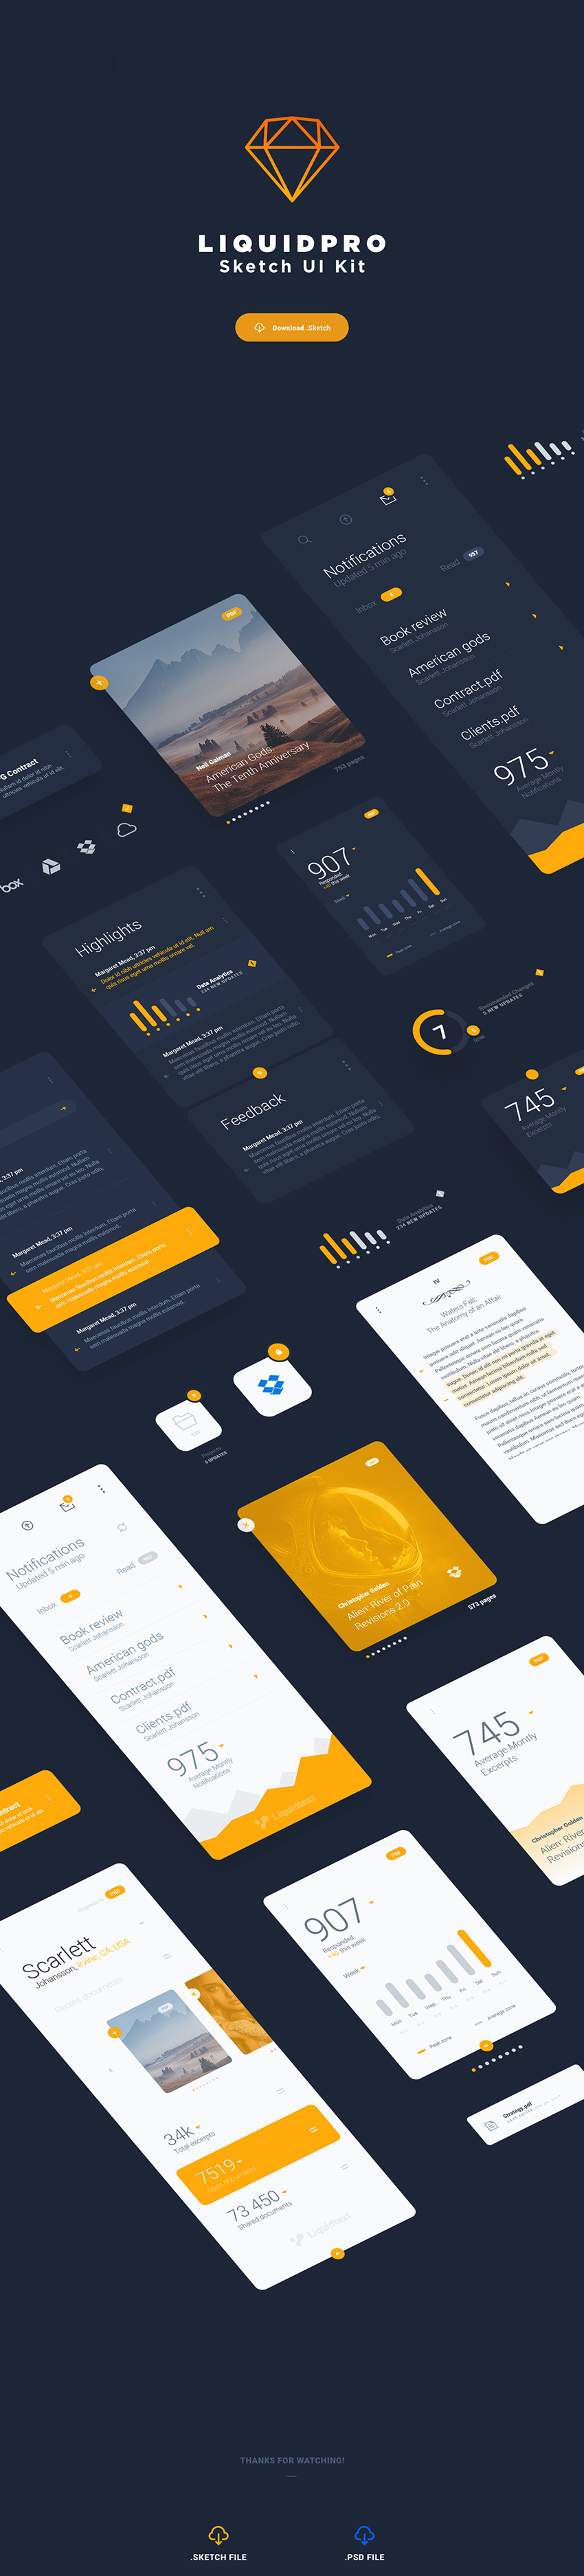 LiquidPRO Free Sketch UI Kit - great reading experience app design